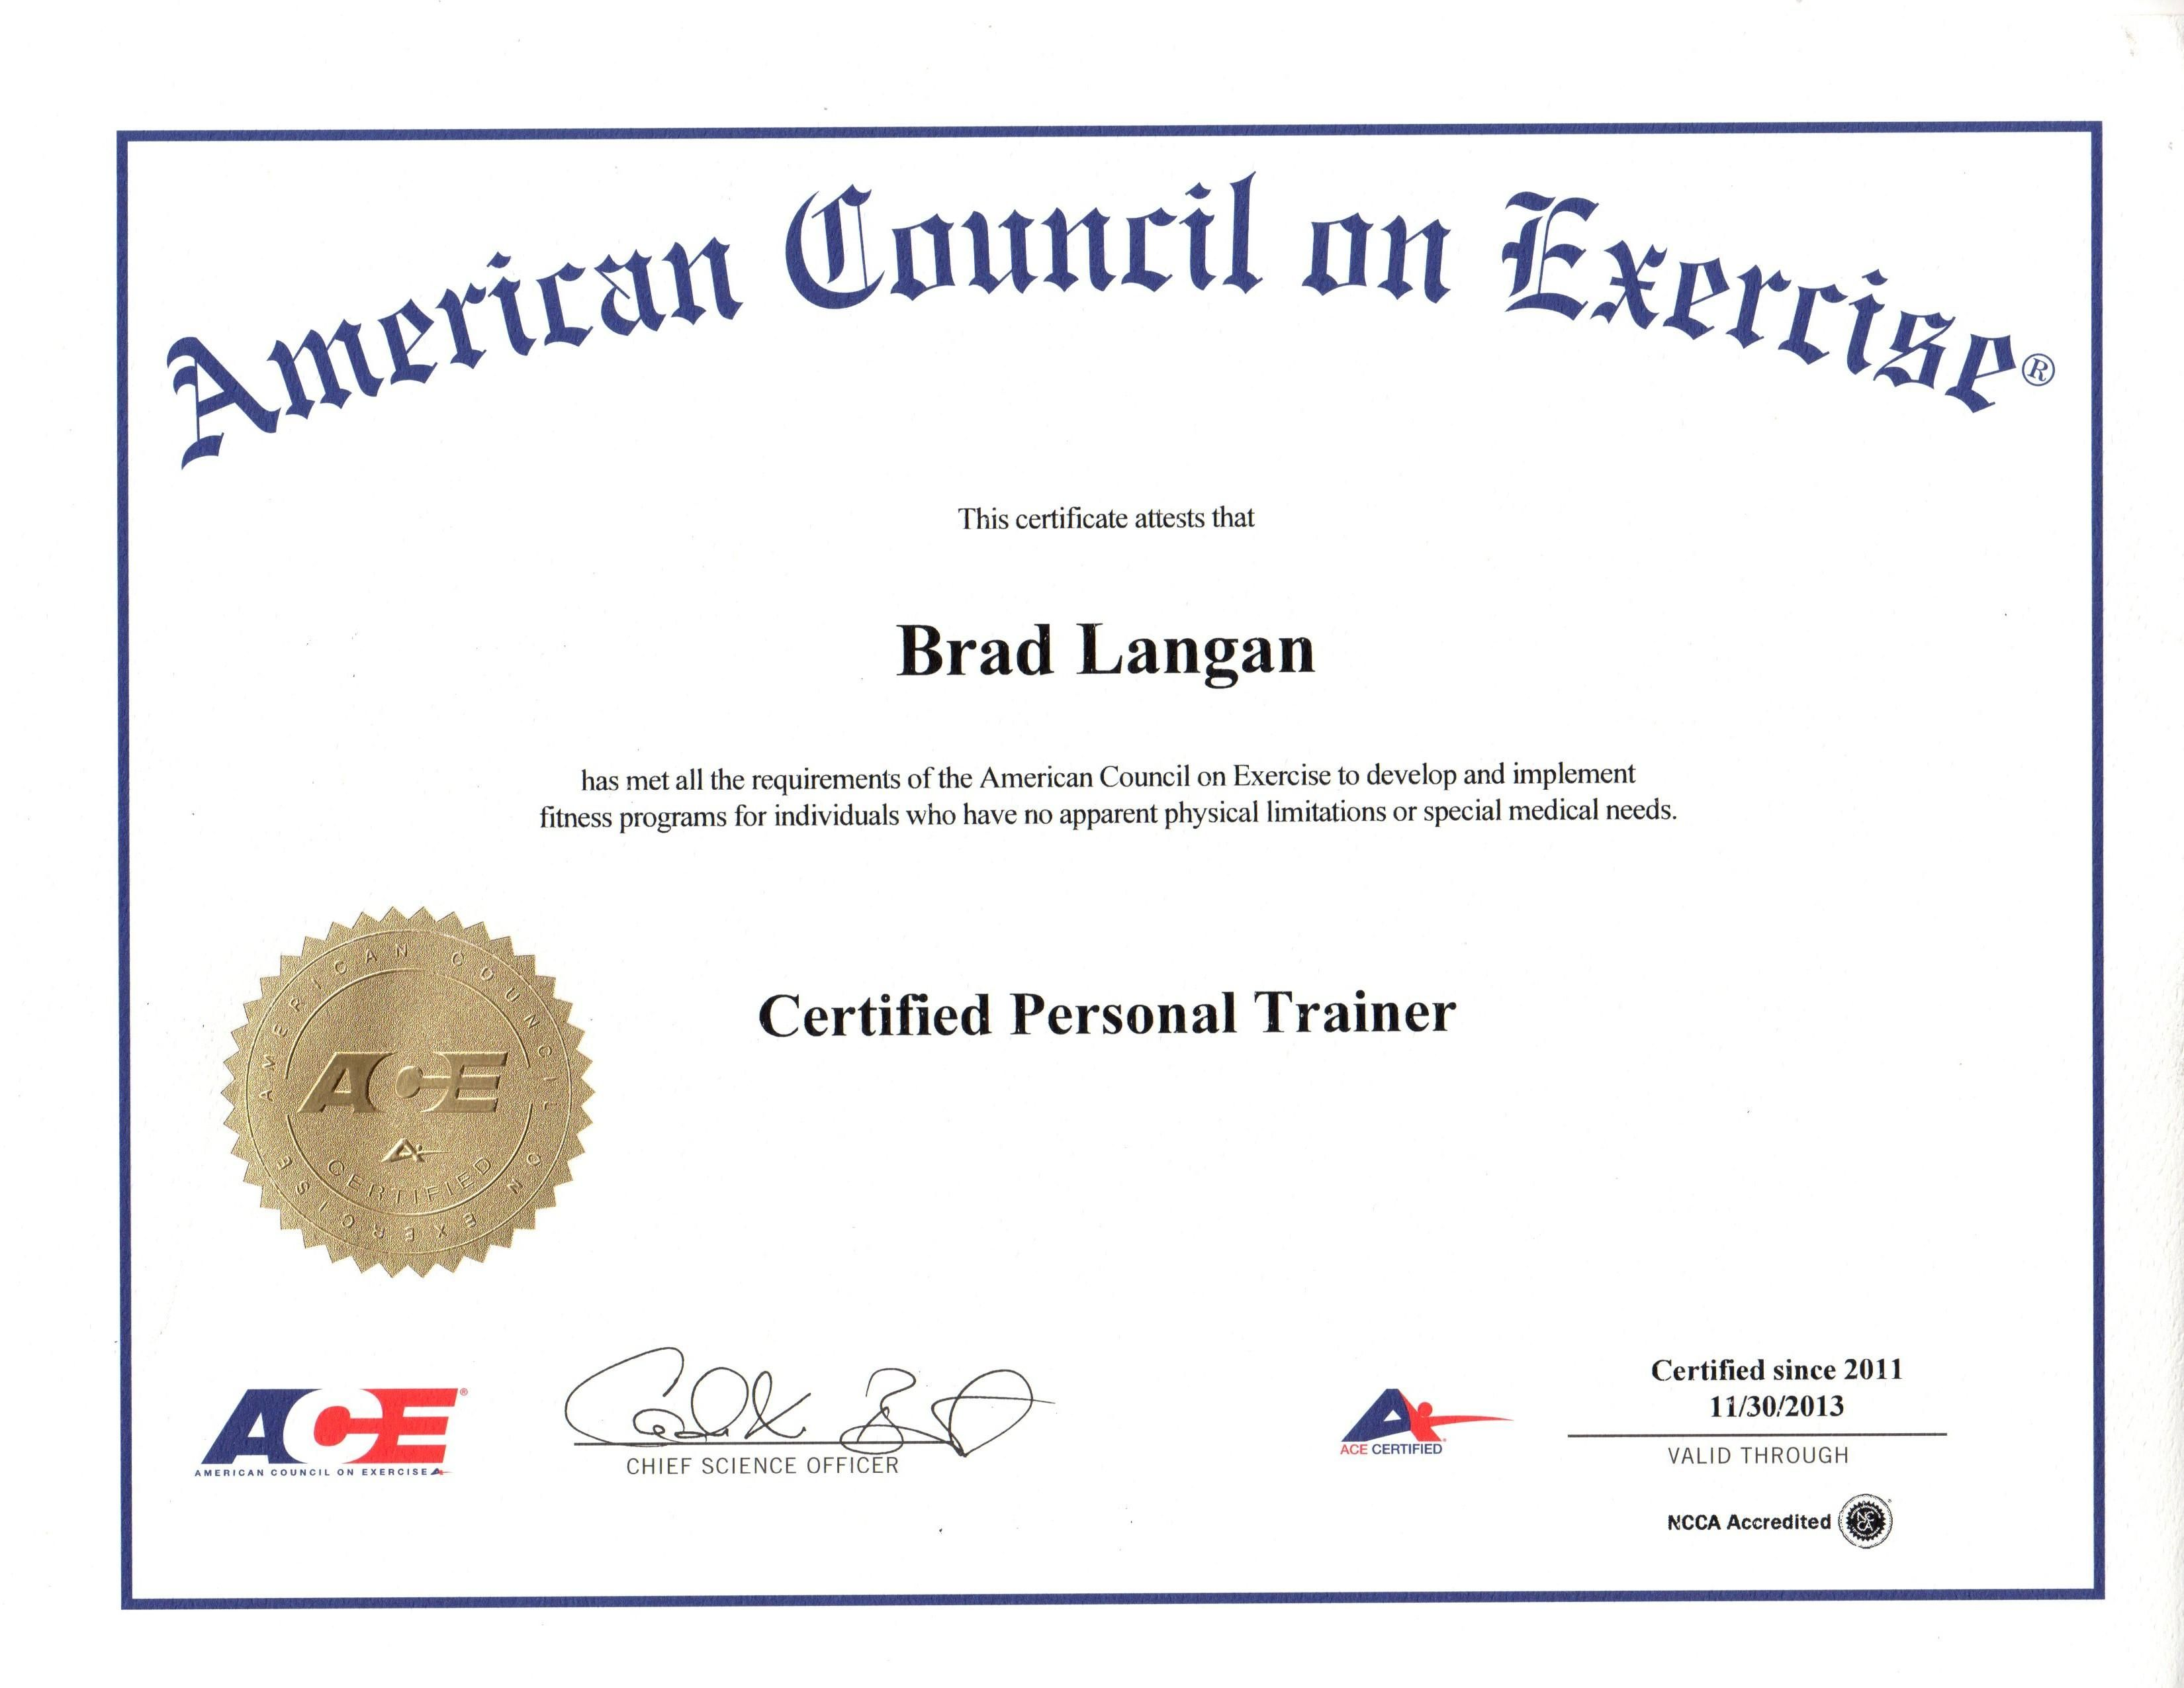 Get In Touch With Global Fitness Educators To Get Ace And Nasm